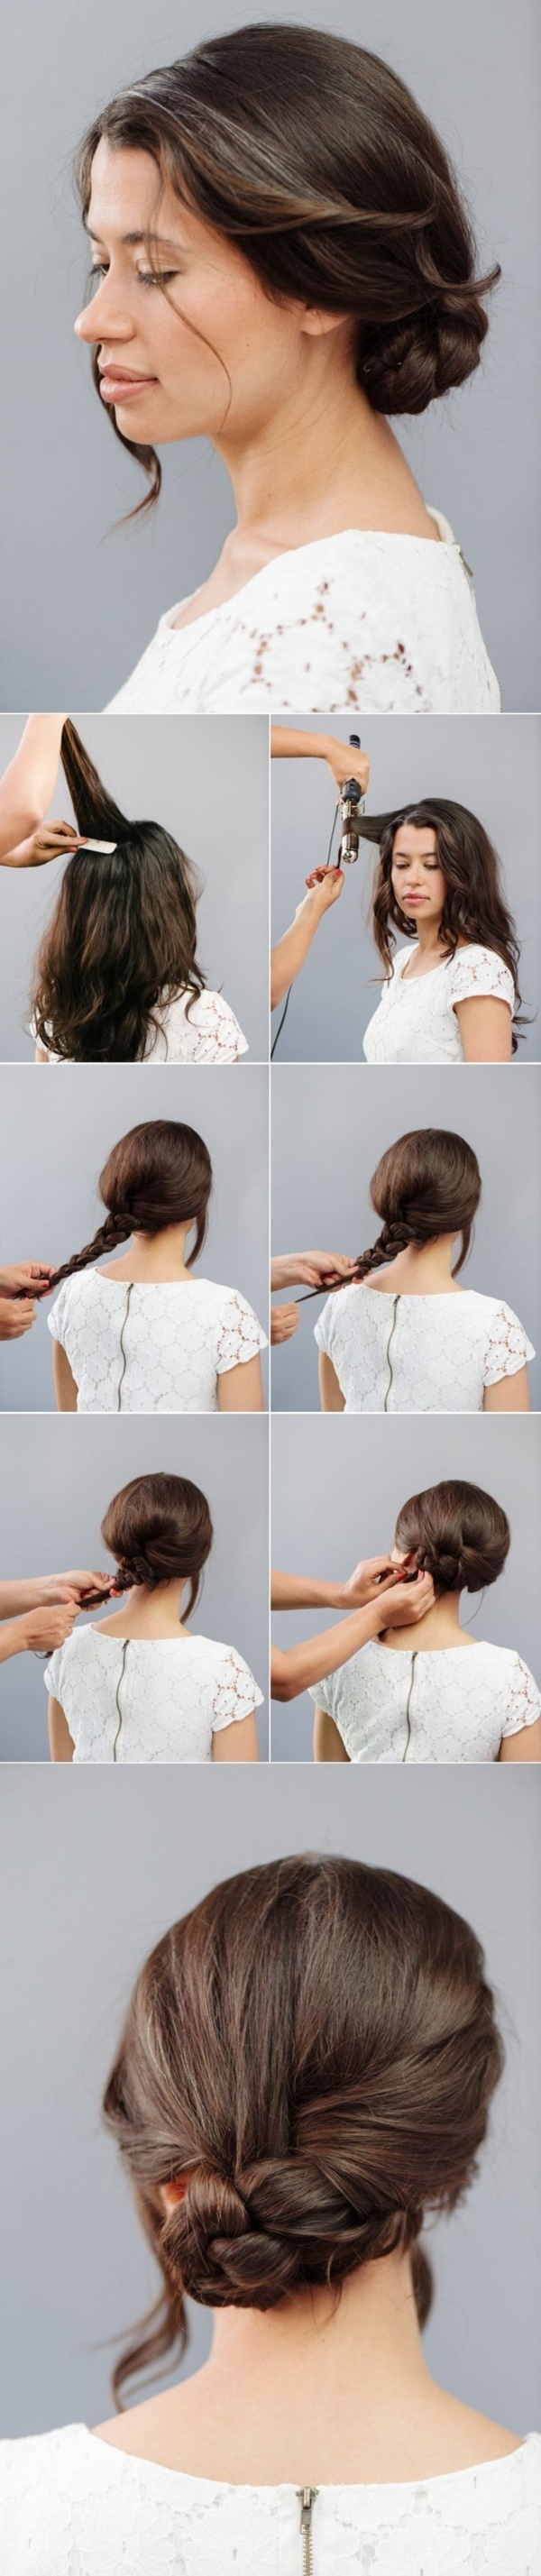 Pleasing 101 Easy Diy Hairstyles For Medium And Long Hair To Snatch Attention Short Hairstyles Gunalazisus